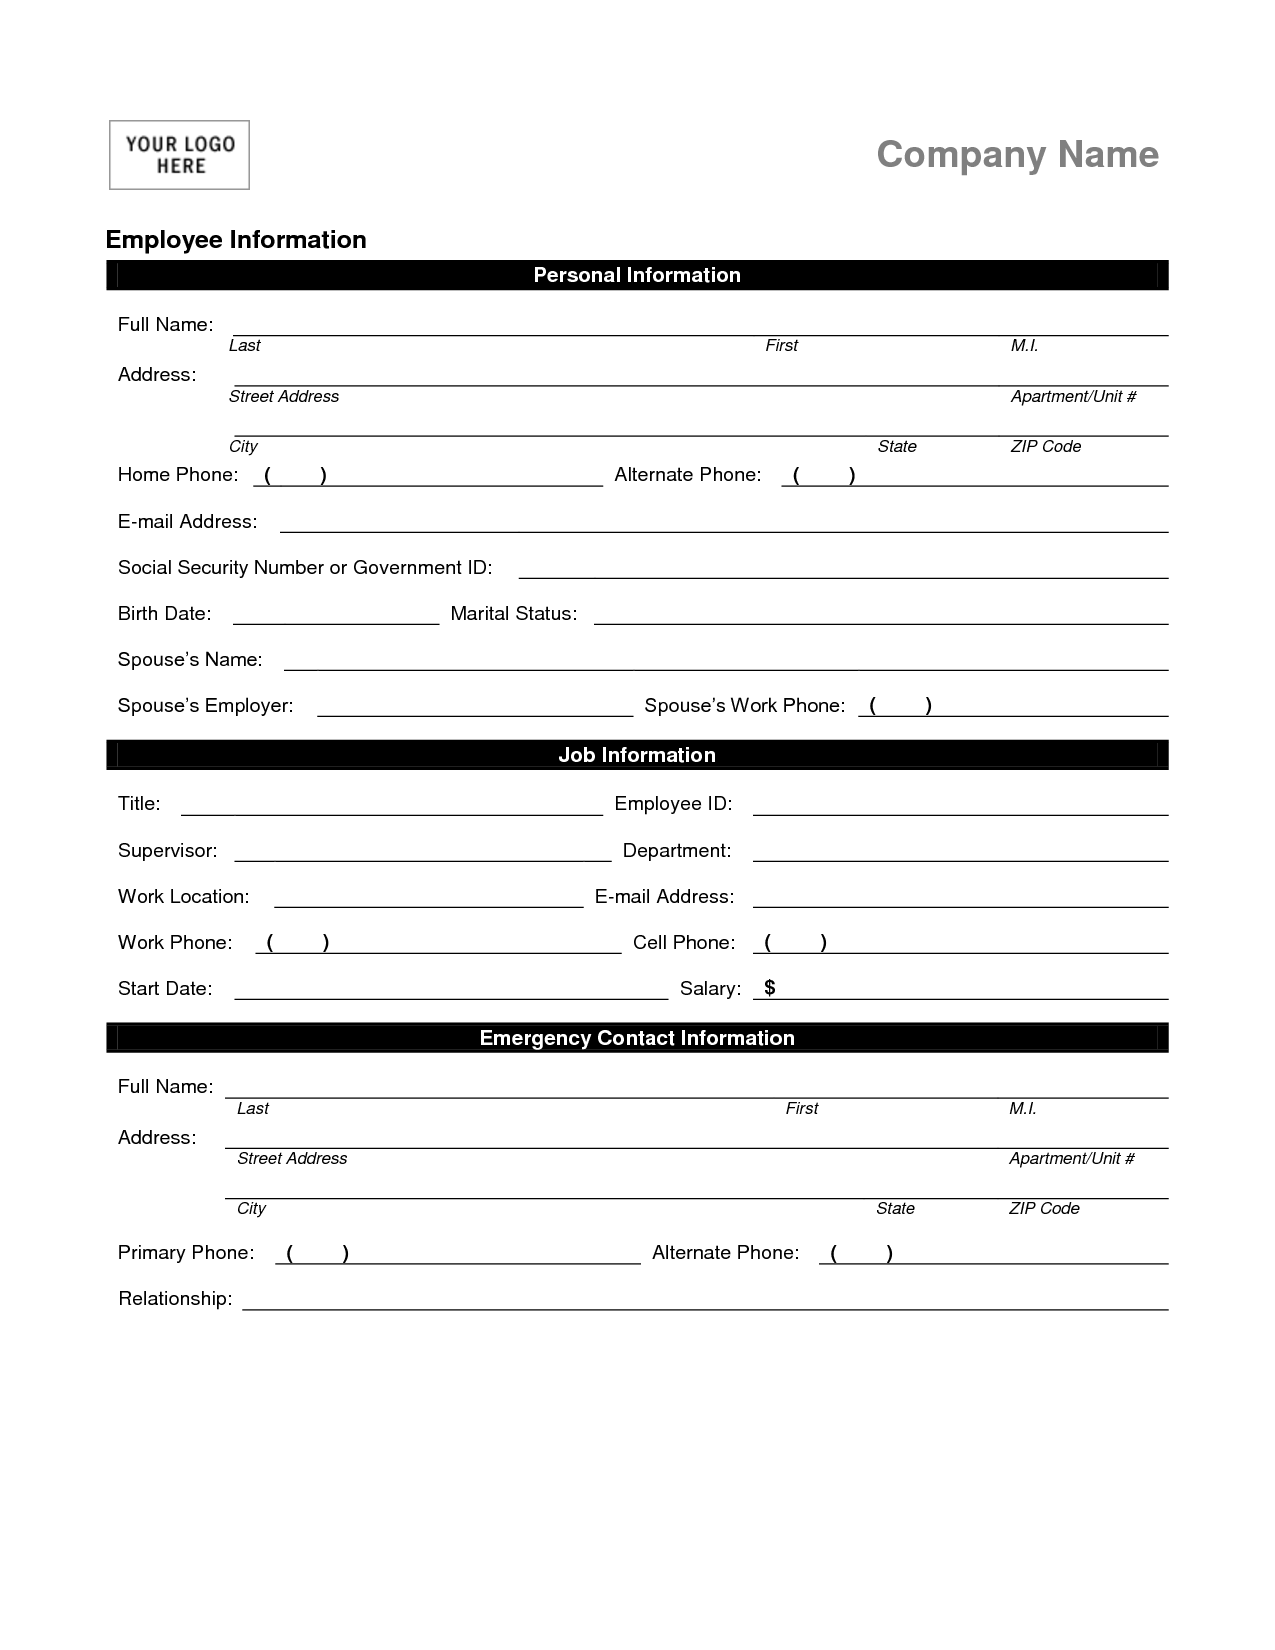 Personal Information Template Employee Personal Information Form Template  Hardsell  Pinterest .